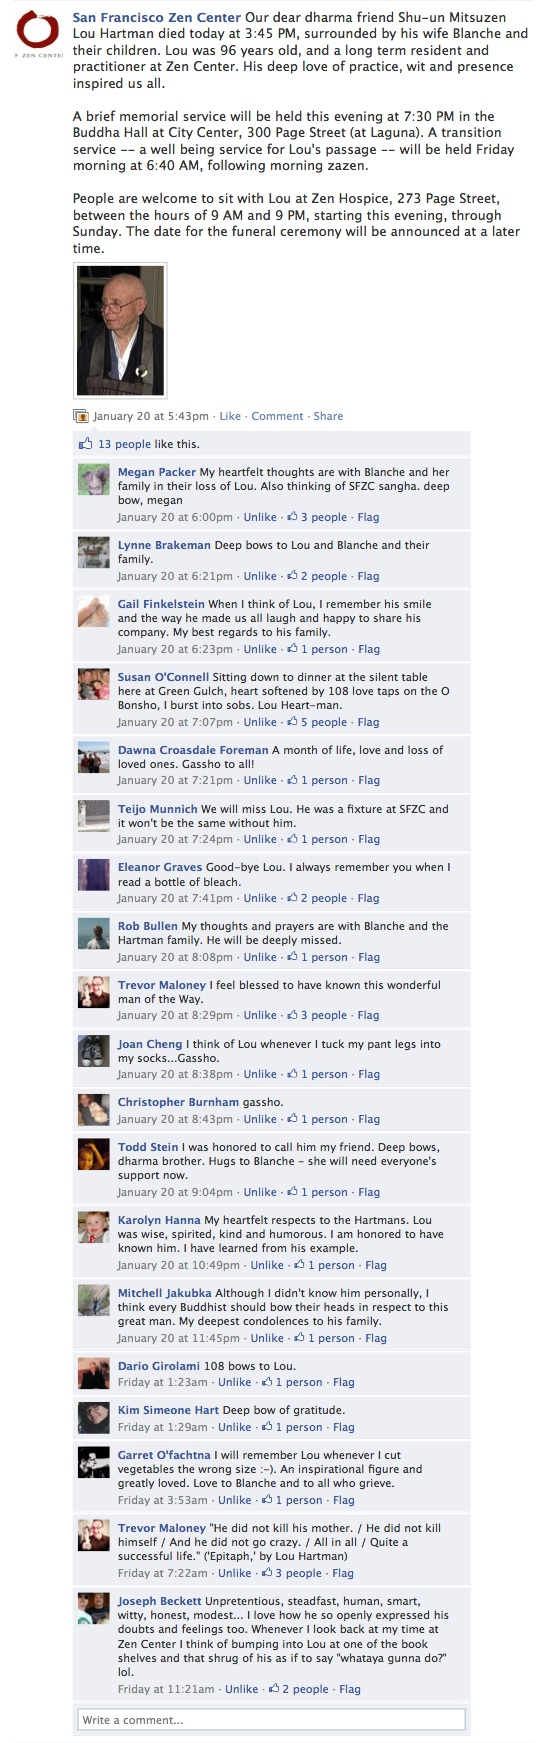 Screenshot of Facebook posting announcing Lou's death, with commentary from visitors.